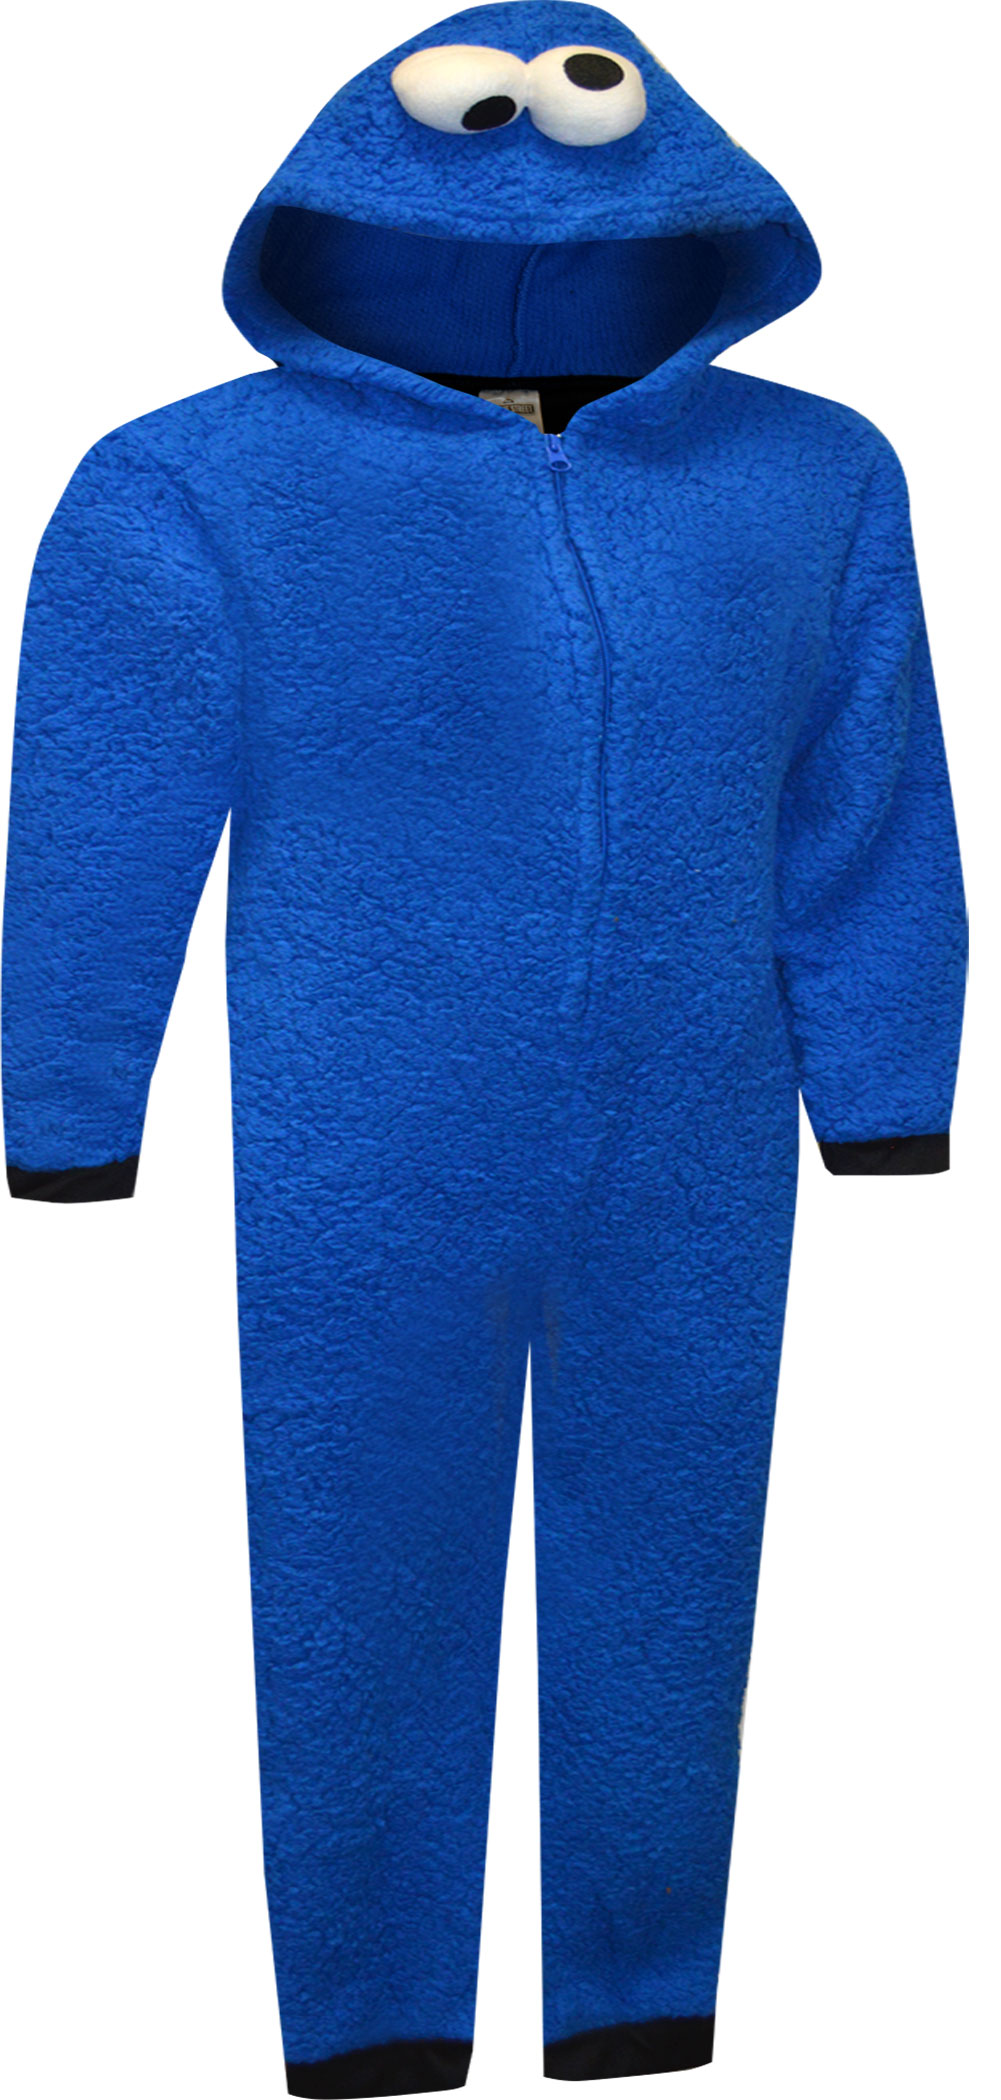 Image of Sesame Street Cookie Monster Hooded Union Suit Kids Pajamas for boys